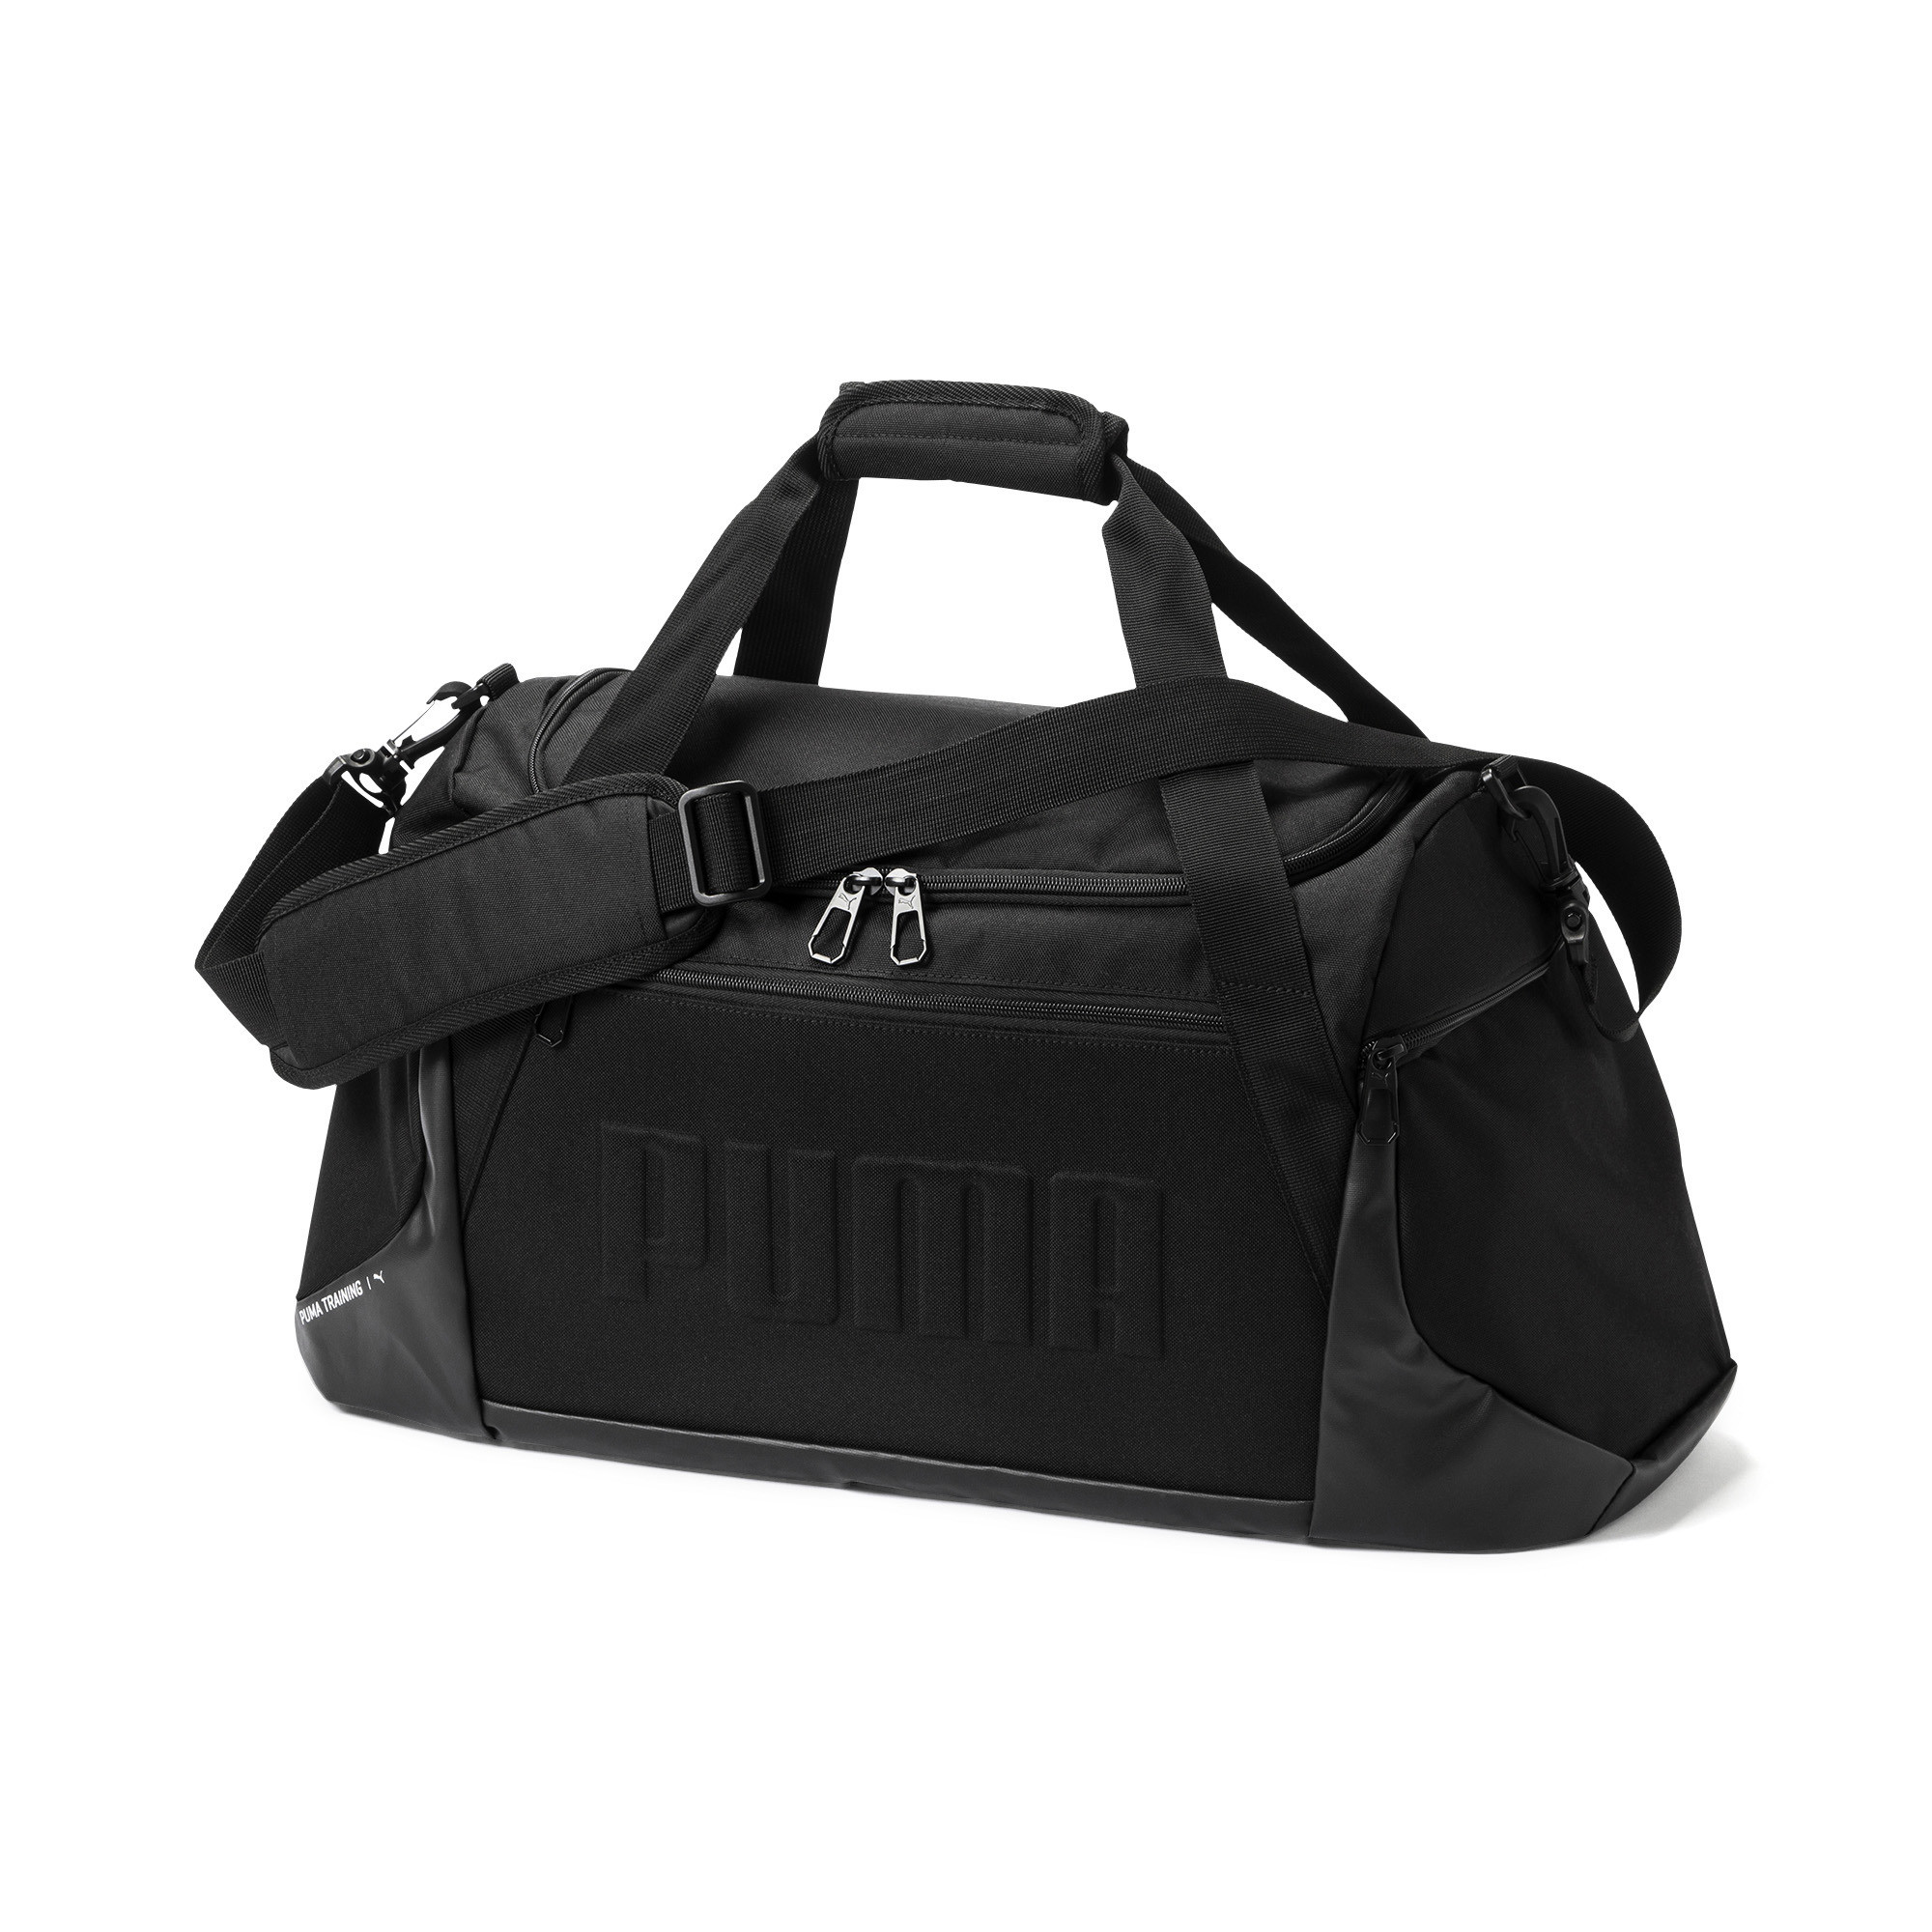 37921038d Backpacks & Bags - Accessories - Mens